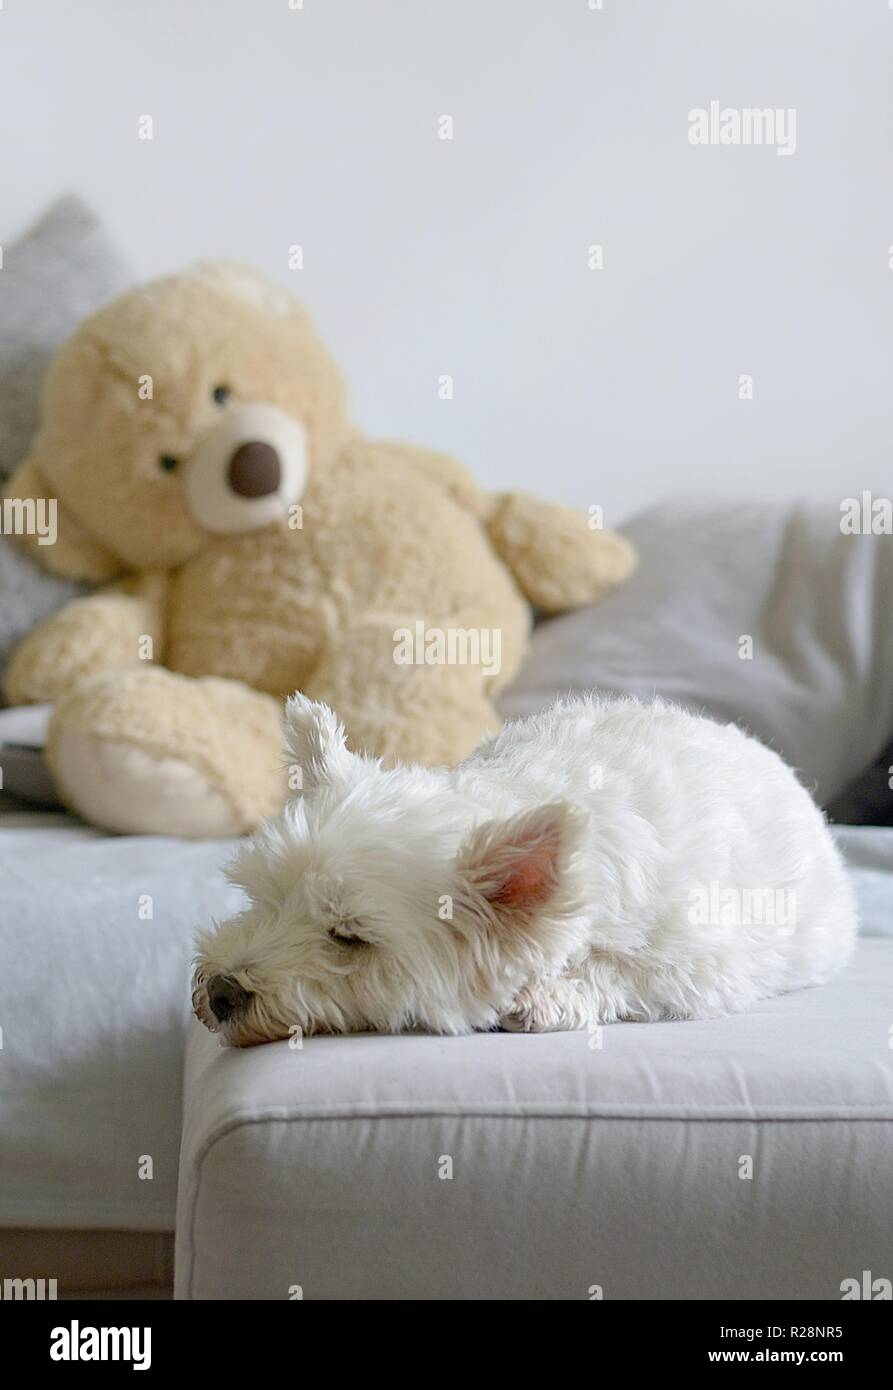 white dog sleeping on a sofa - Stock Image